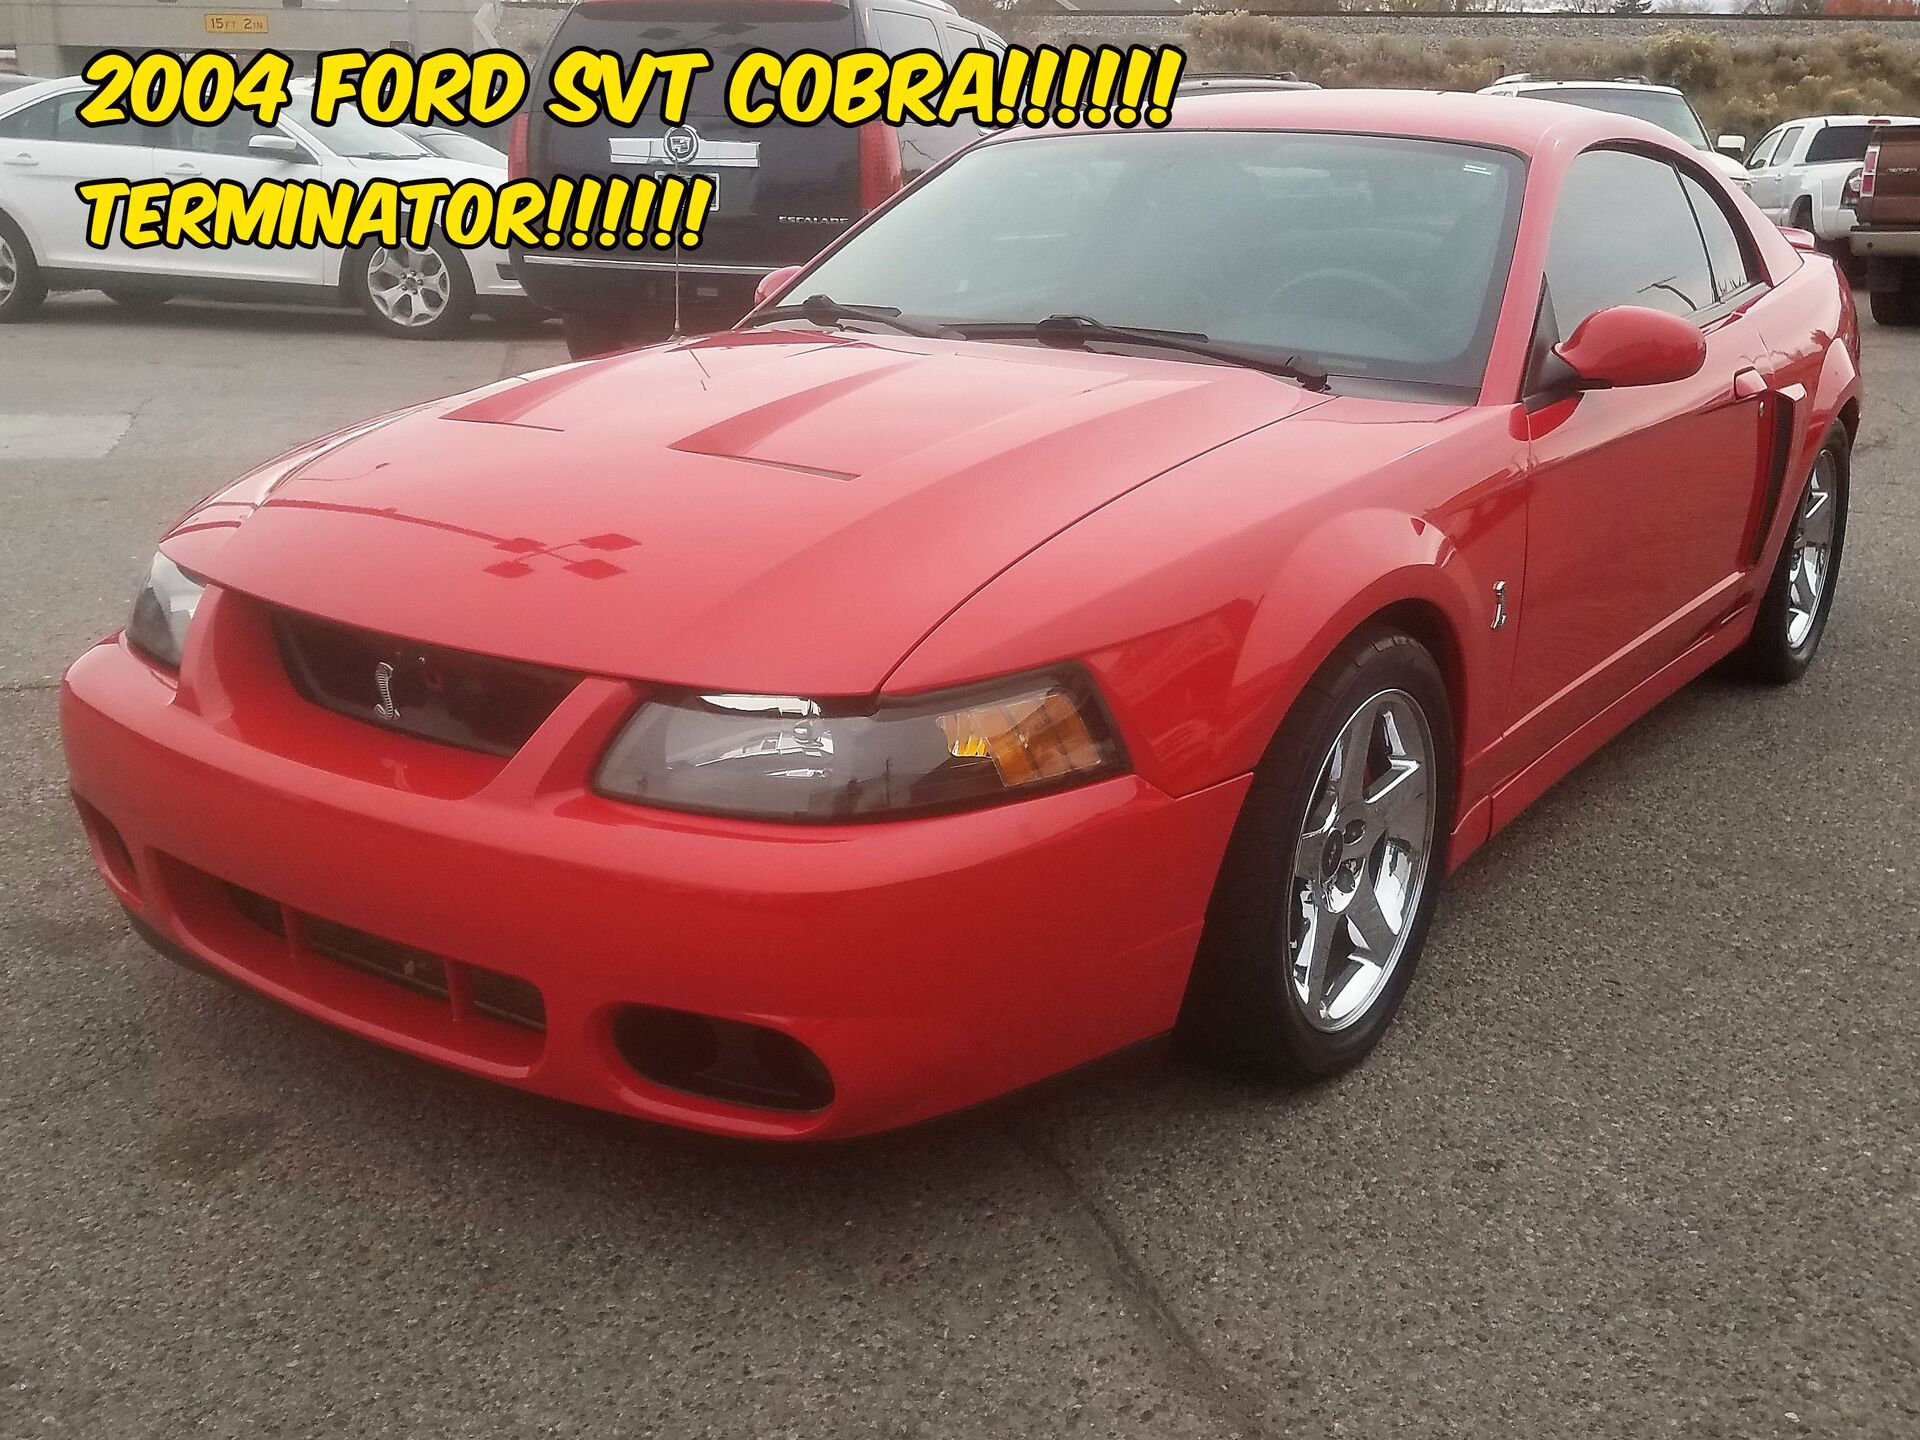 2004 Ford SVT Cobra